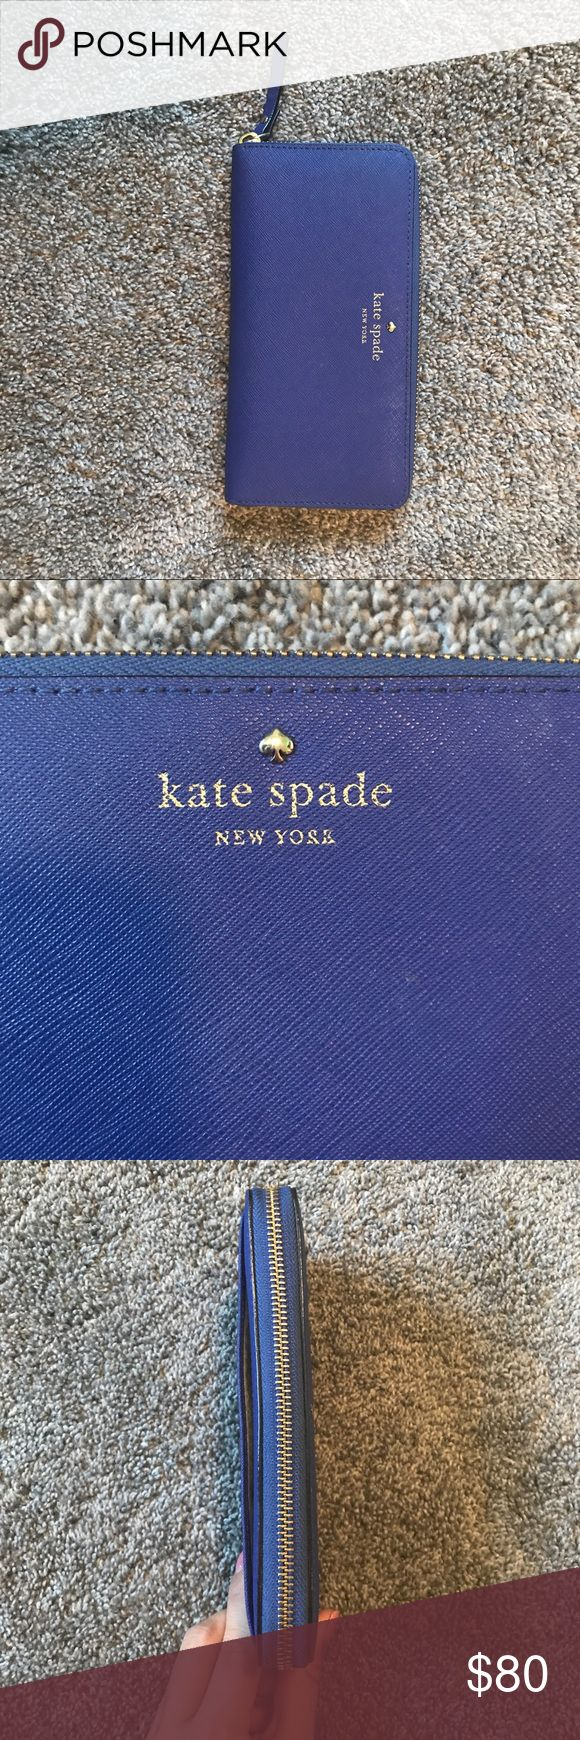 Cameron Street Lacey Kate Spade Cameron Street Lacey wallet in a cobalt blue color! There is an outside pocket, and this wallet does zip close. There are 12 credit card slots, six on each side and a pocket behind each. There is a pocket in the middle for money and then a zip enclosure for coins. Where the money goes, there are three little spots on the bottom left, and the first pocket when opening up has a barely noticeable lipstick stain, I pictured both! Otherwise this wallet looks brand…